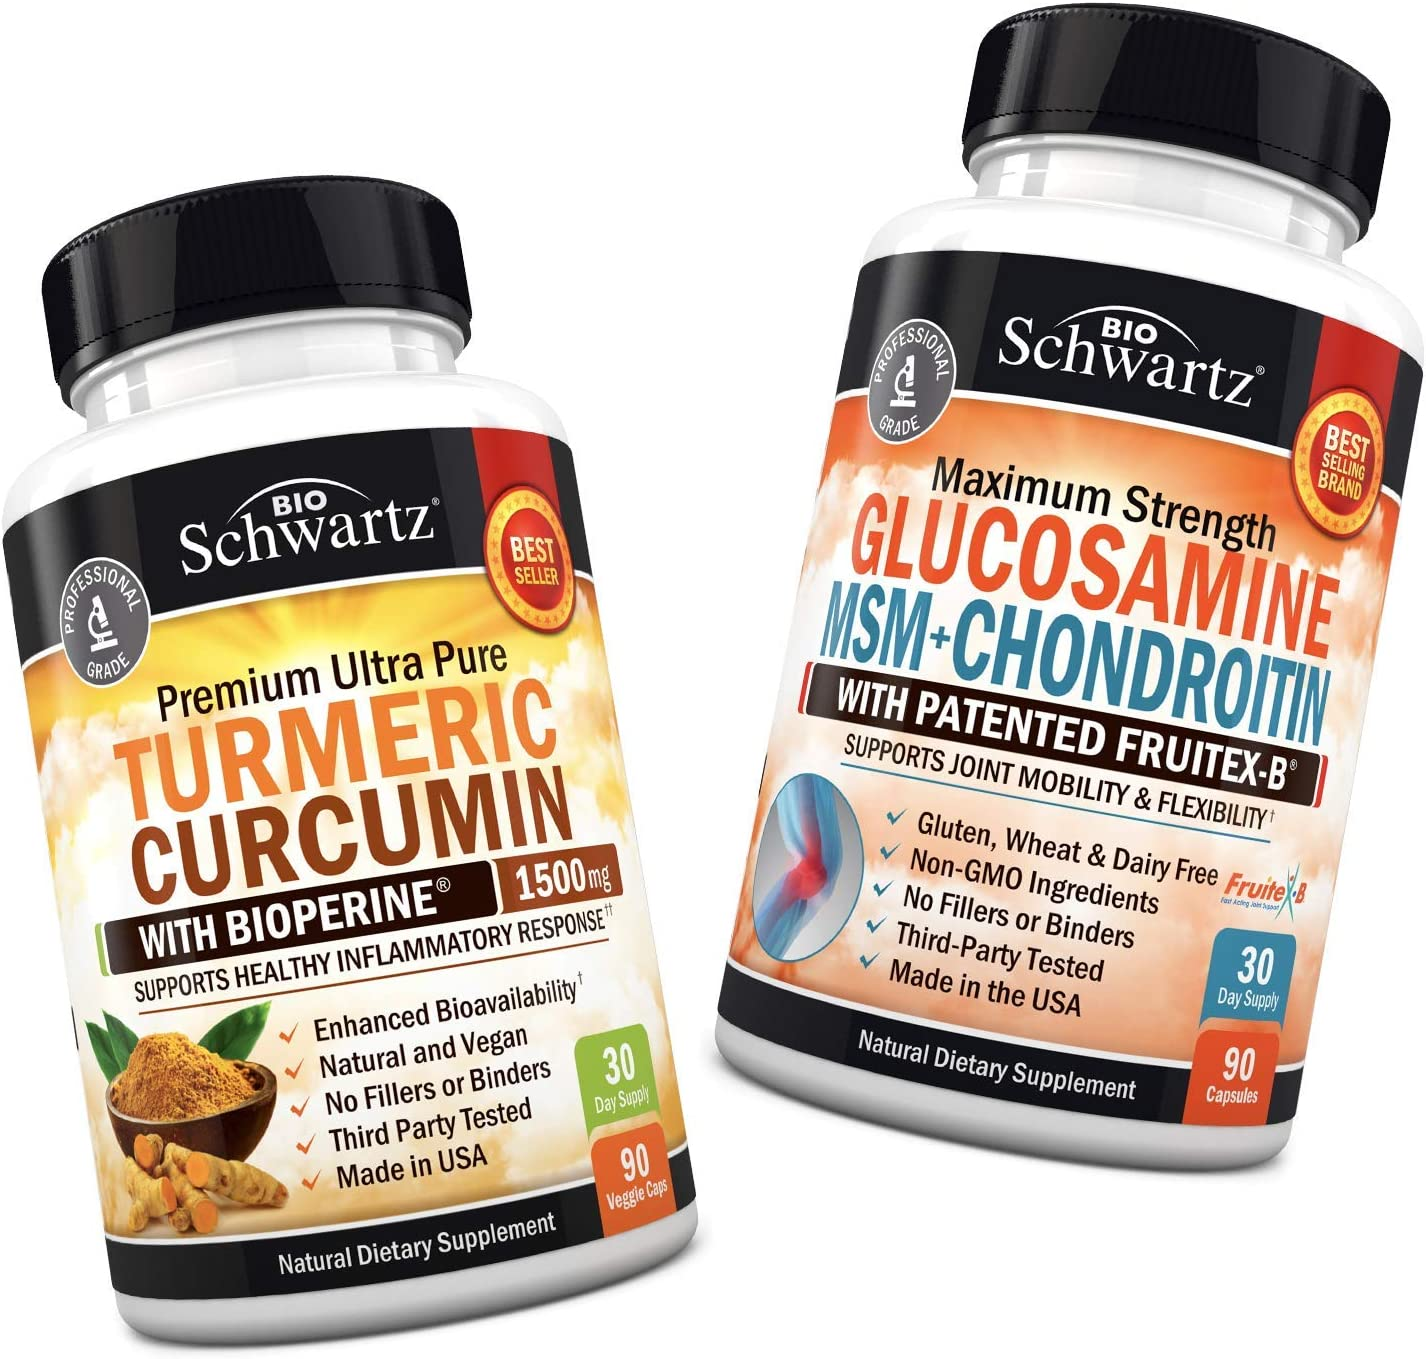 Turmeric Curcumin with BioPerine 1500mg + Glucosamine Chondroitin MSM - Premium Joint Support - Promotes Healthy Inflammatory Support - Non-GMO & Gluten-Free